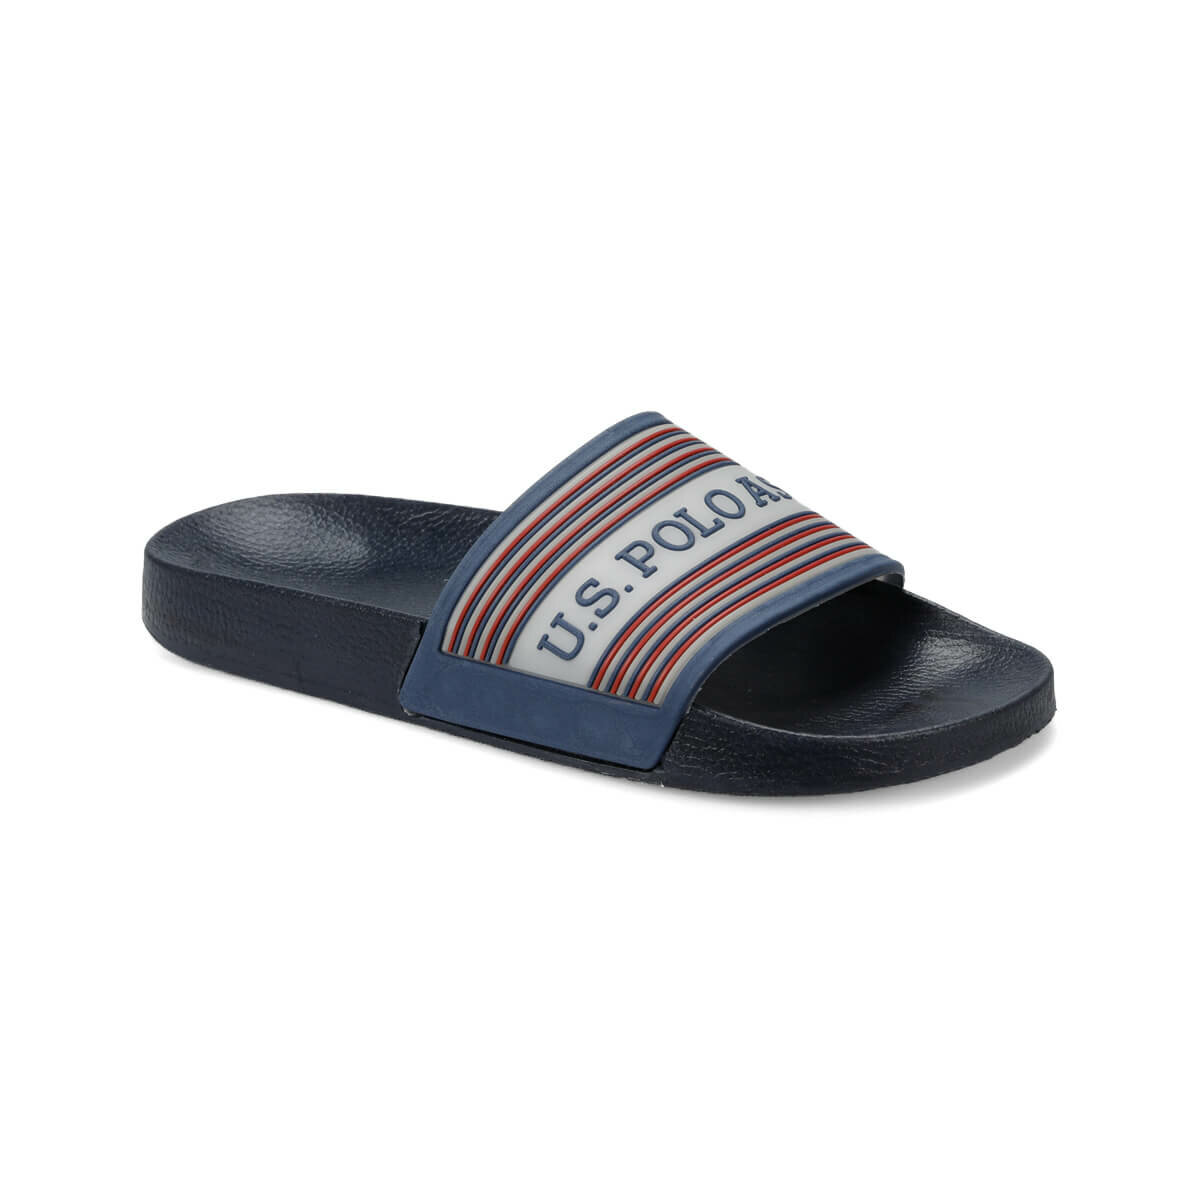 FLO DUVINA Navy Blue Male Slippers U.S. POLO ASSN.